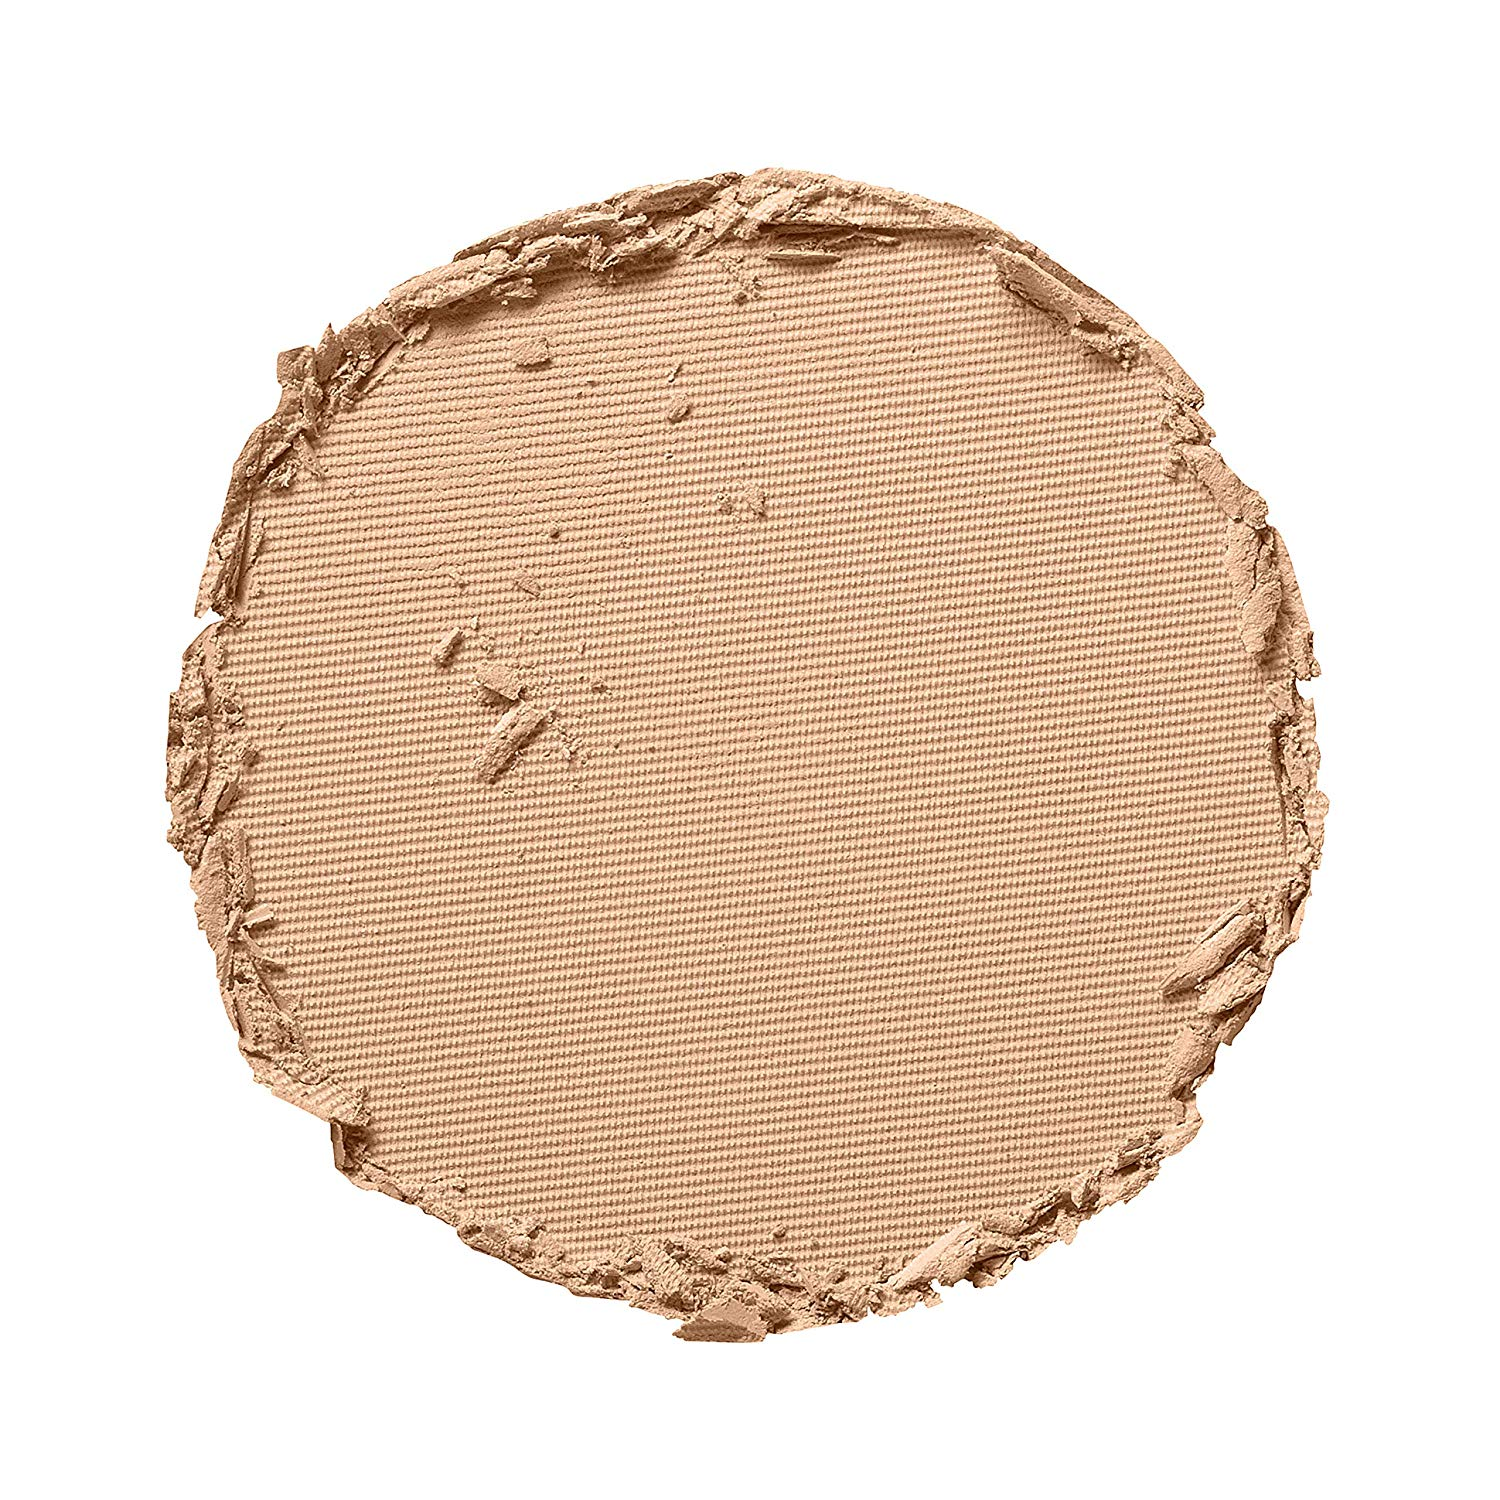 Bause cosmetics Compact powder